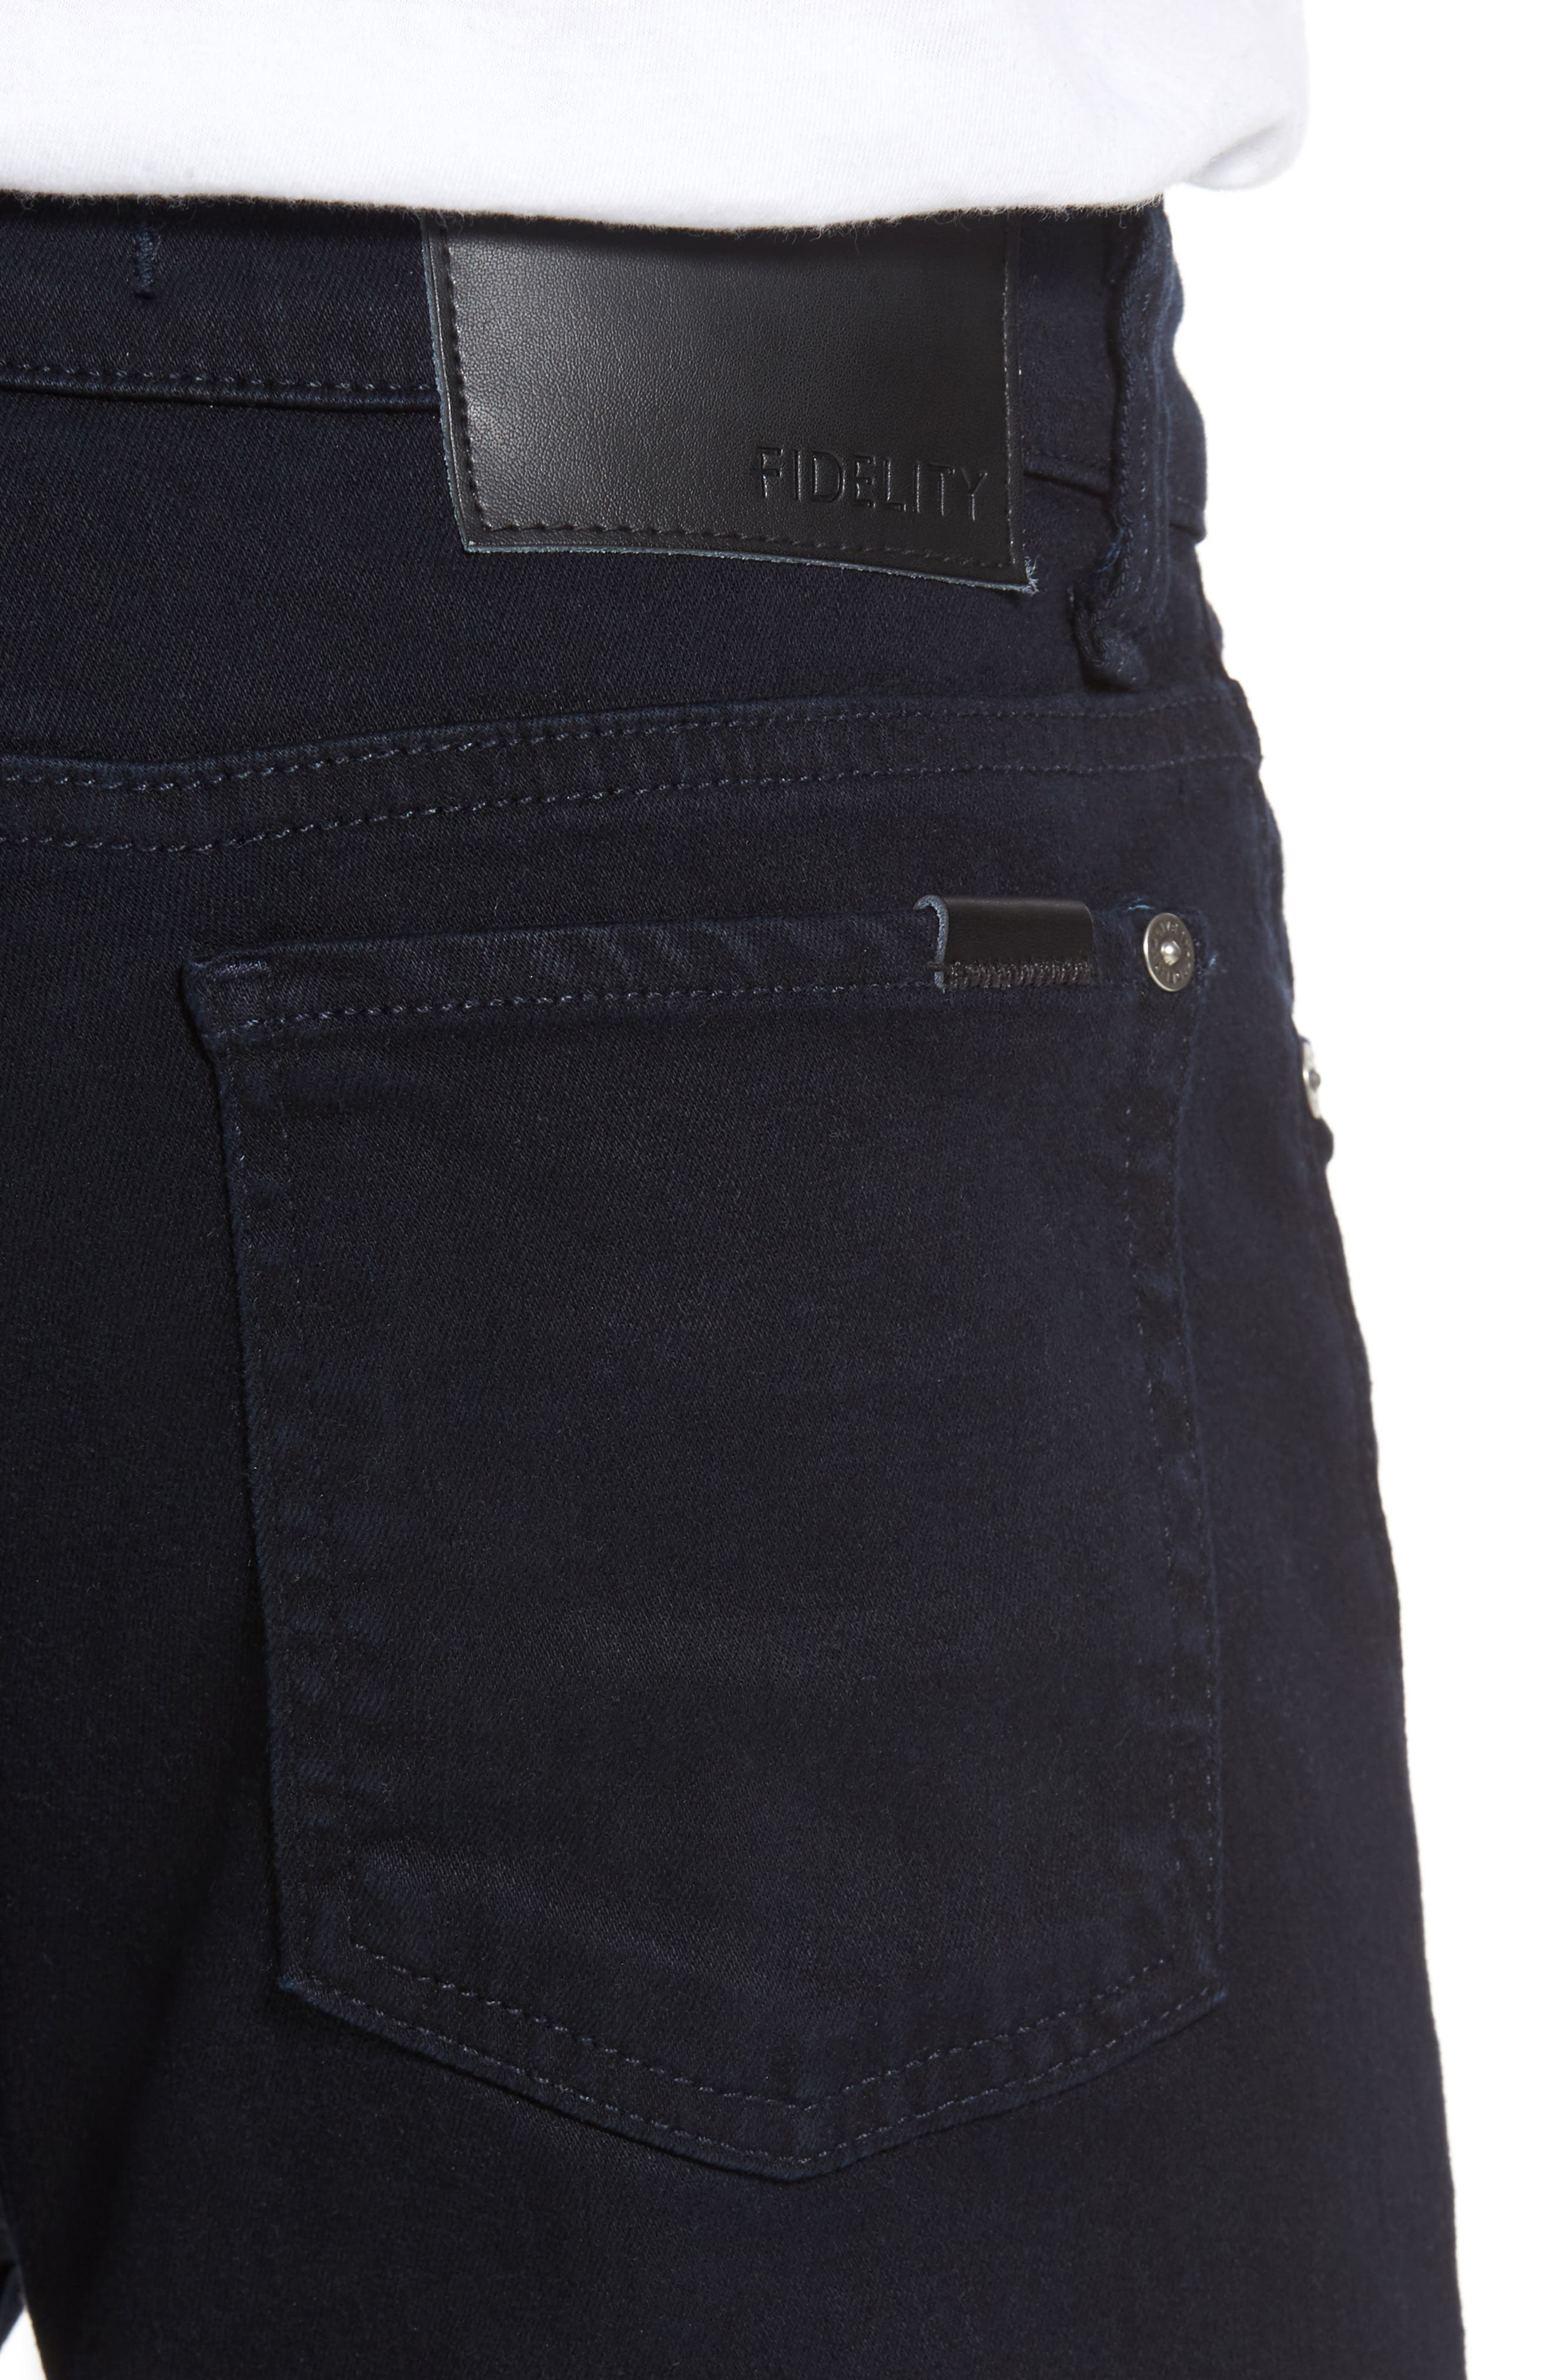 Torino Slim Fit Jeans,                             Alternate thumbnail 4, color,                             EVERBLUE